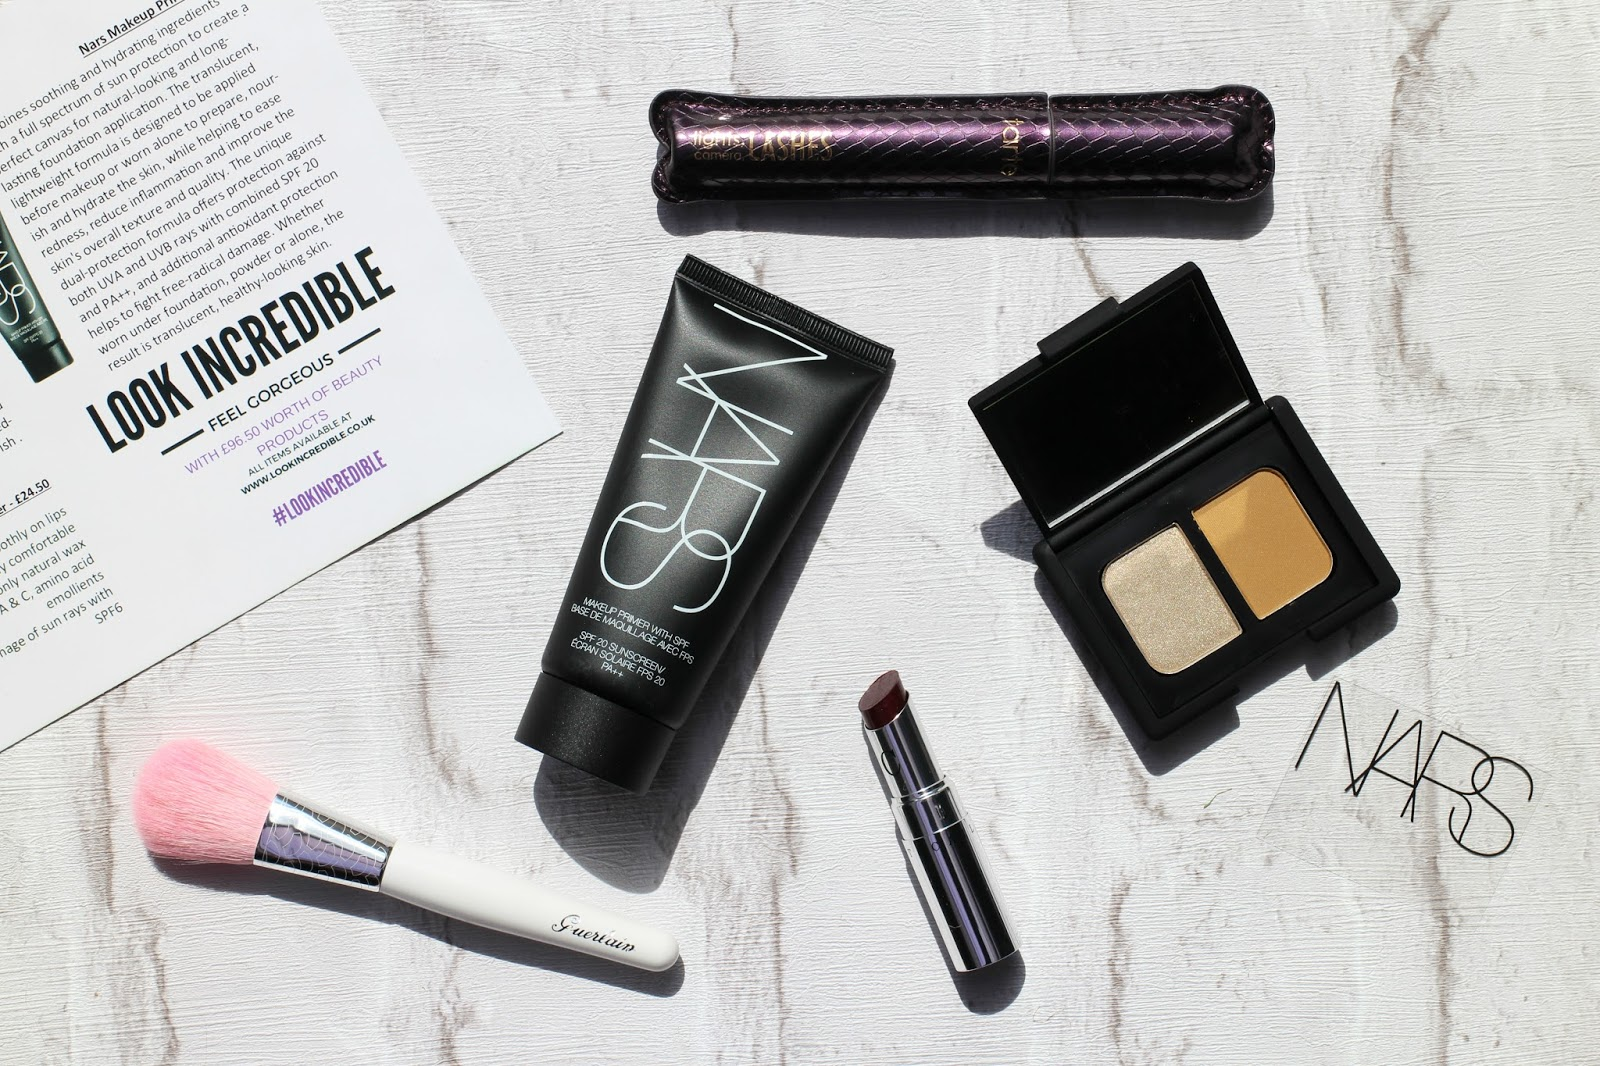 Look Incredible Deluxe Beauty Box May 2016 Review